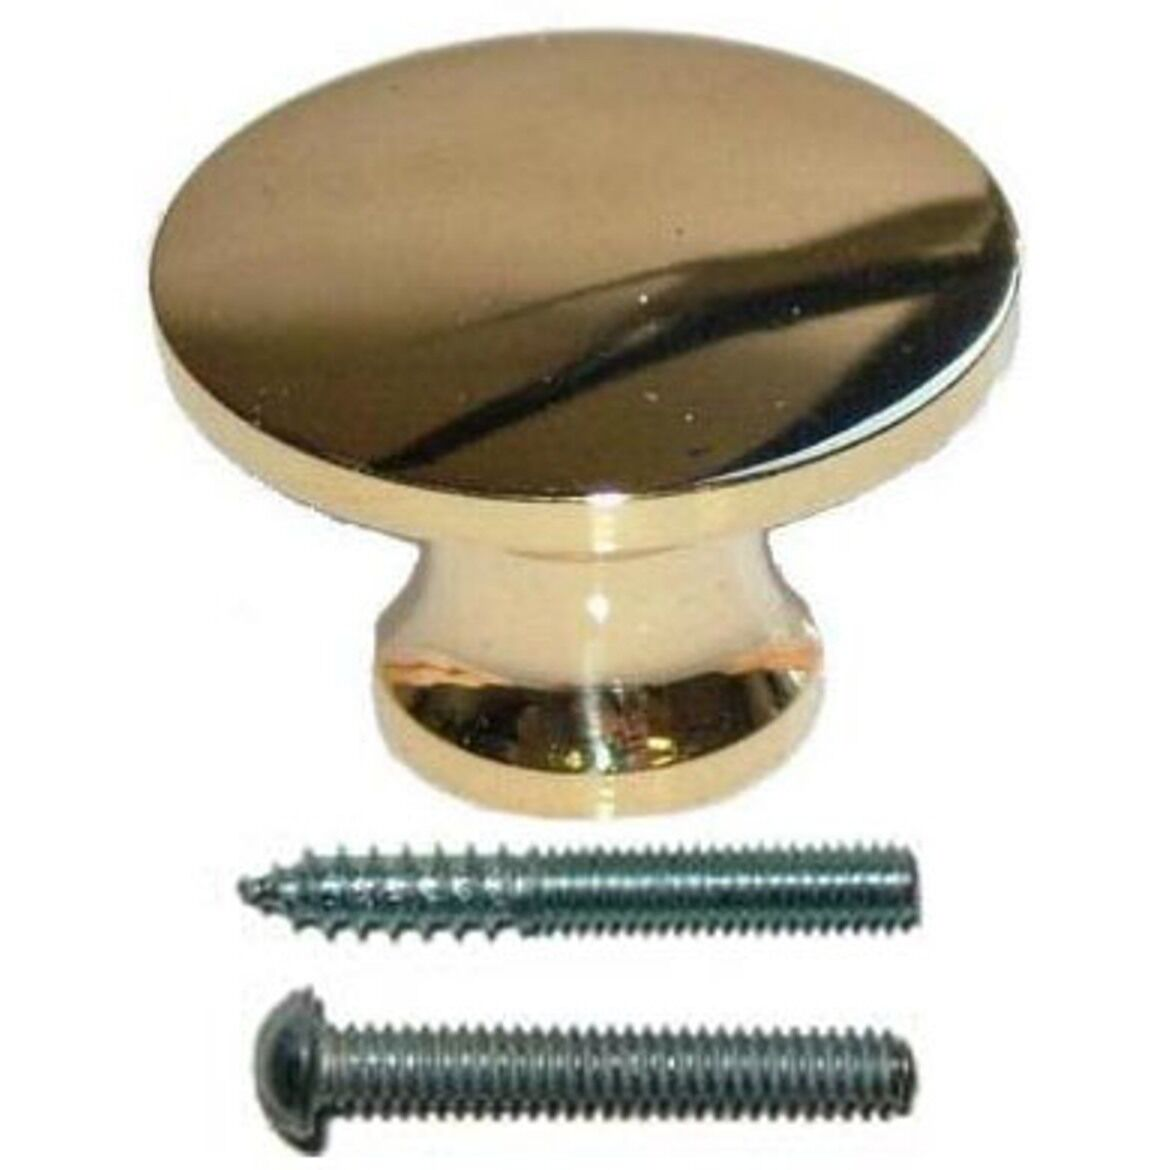 Bk-3D Solid Brass Knob, Diameter: 3/4""